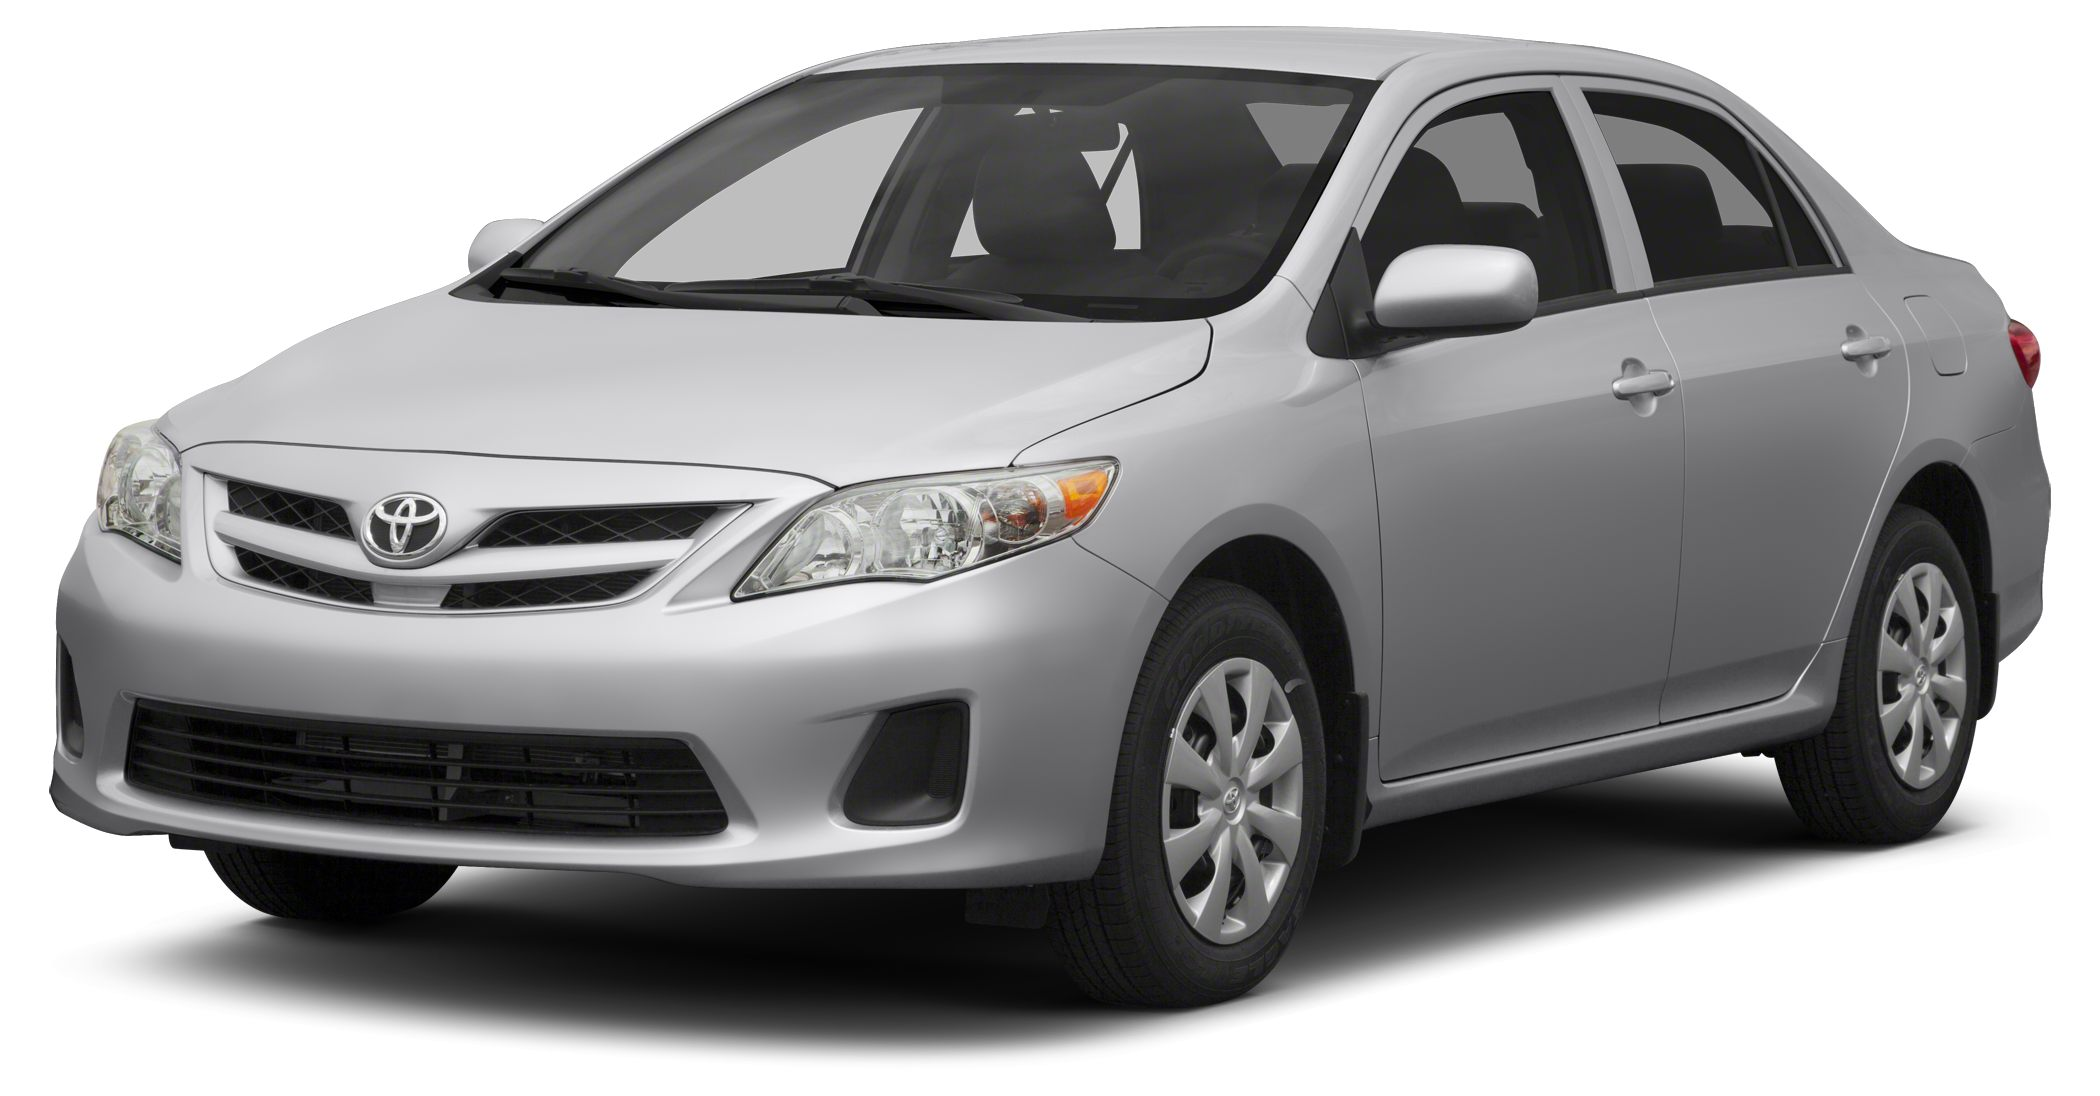 2013 Toyota Corolla LE LOW MILES - 24601 FUEL EFFICIENT 34 MPG Hwy26 MPG City CLASSIC SILVER M